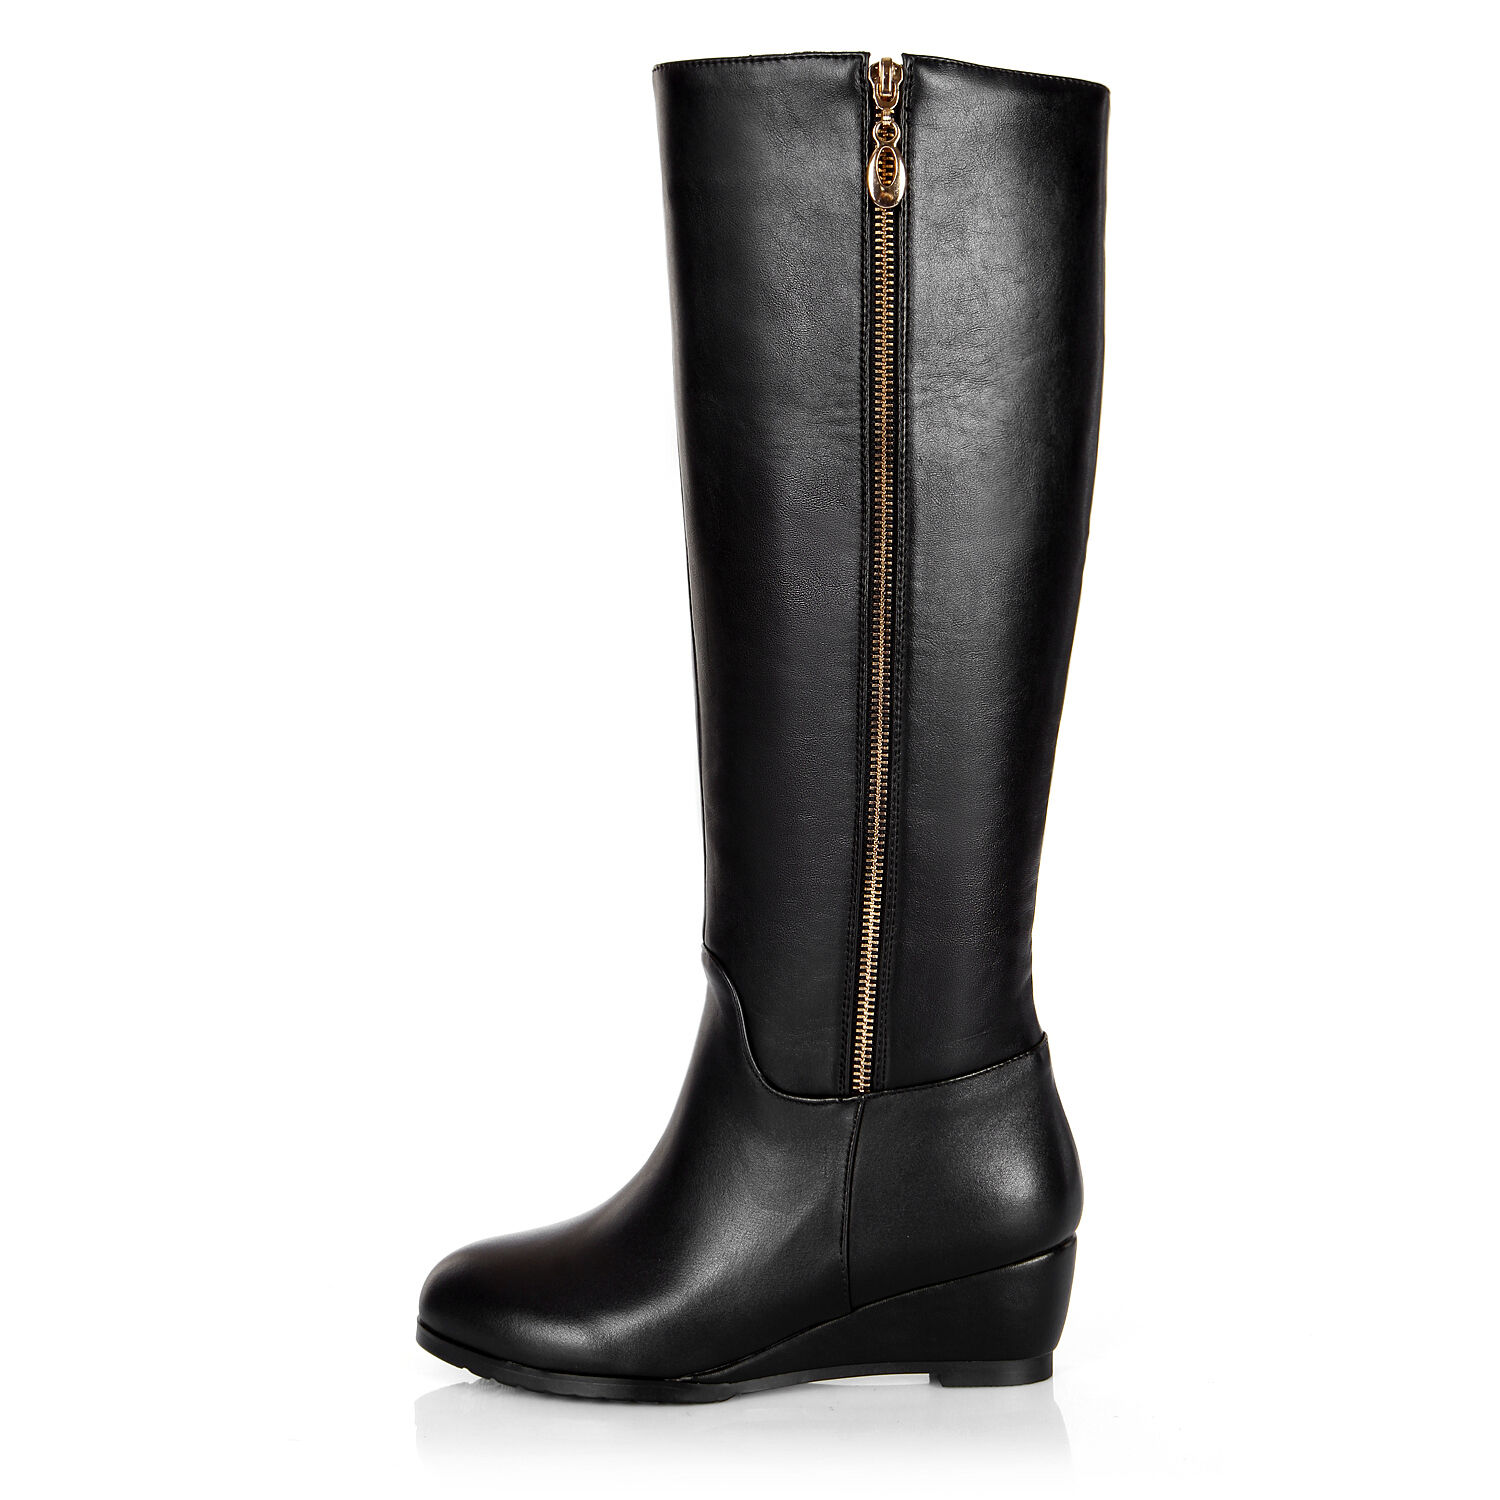 Womens Shoes Genuine Leather Med Wedge Heels Zip Up Knee High Boots US Size b231